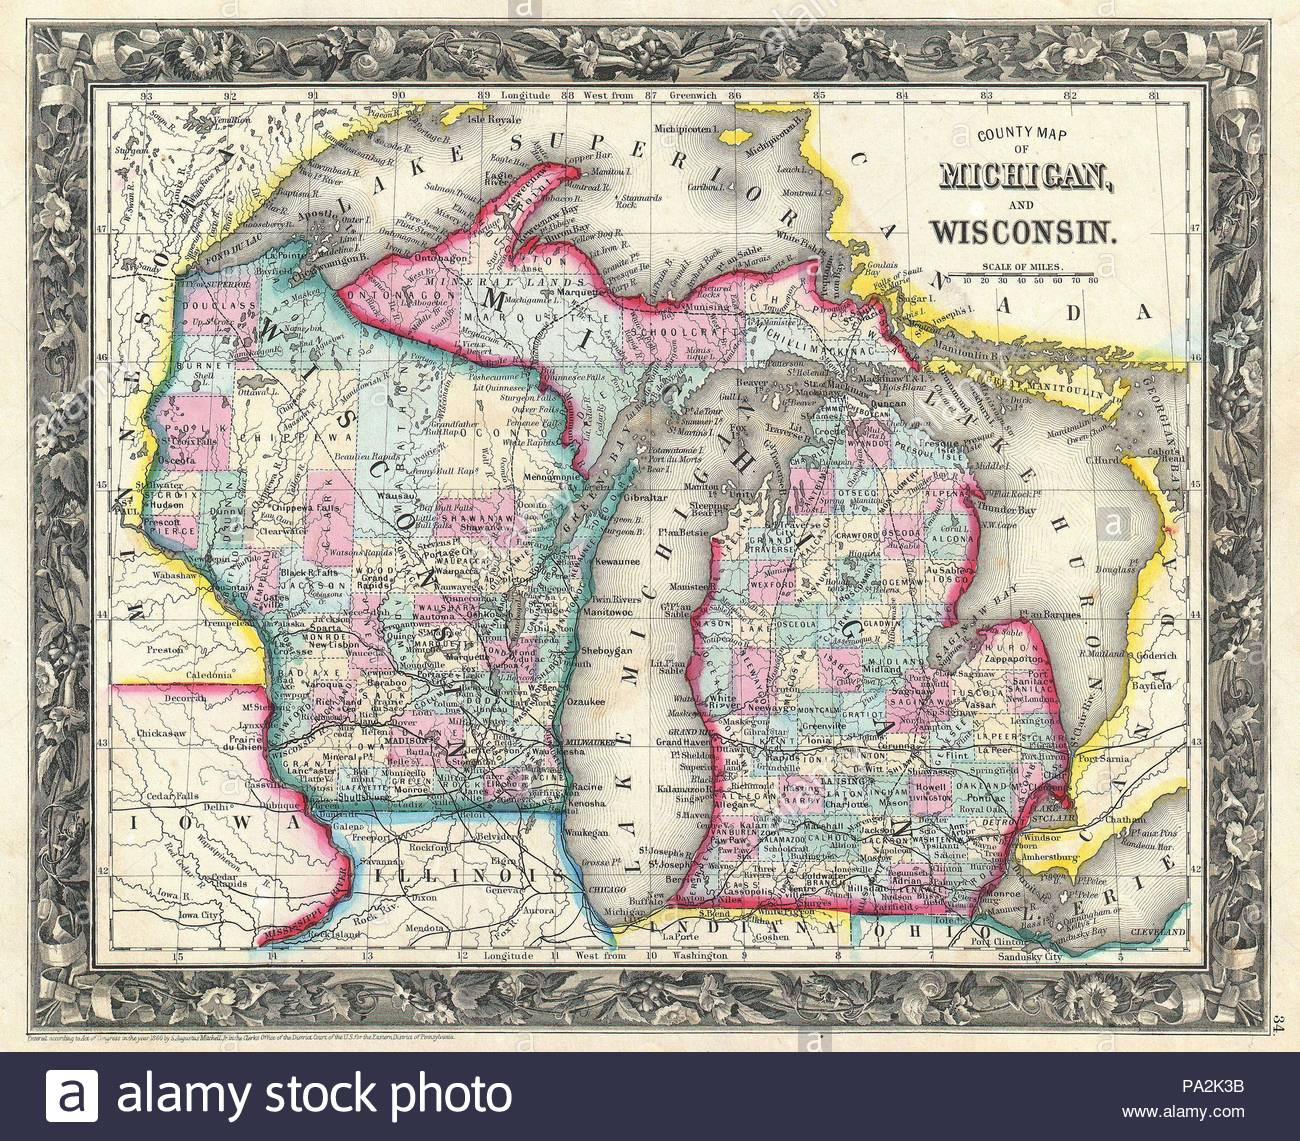 Michigan And Wisconsin Map.1860 Mitchell Map Of Michigan And Wisconsin First Edition Stock